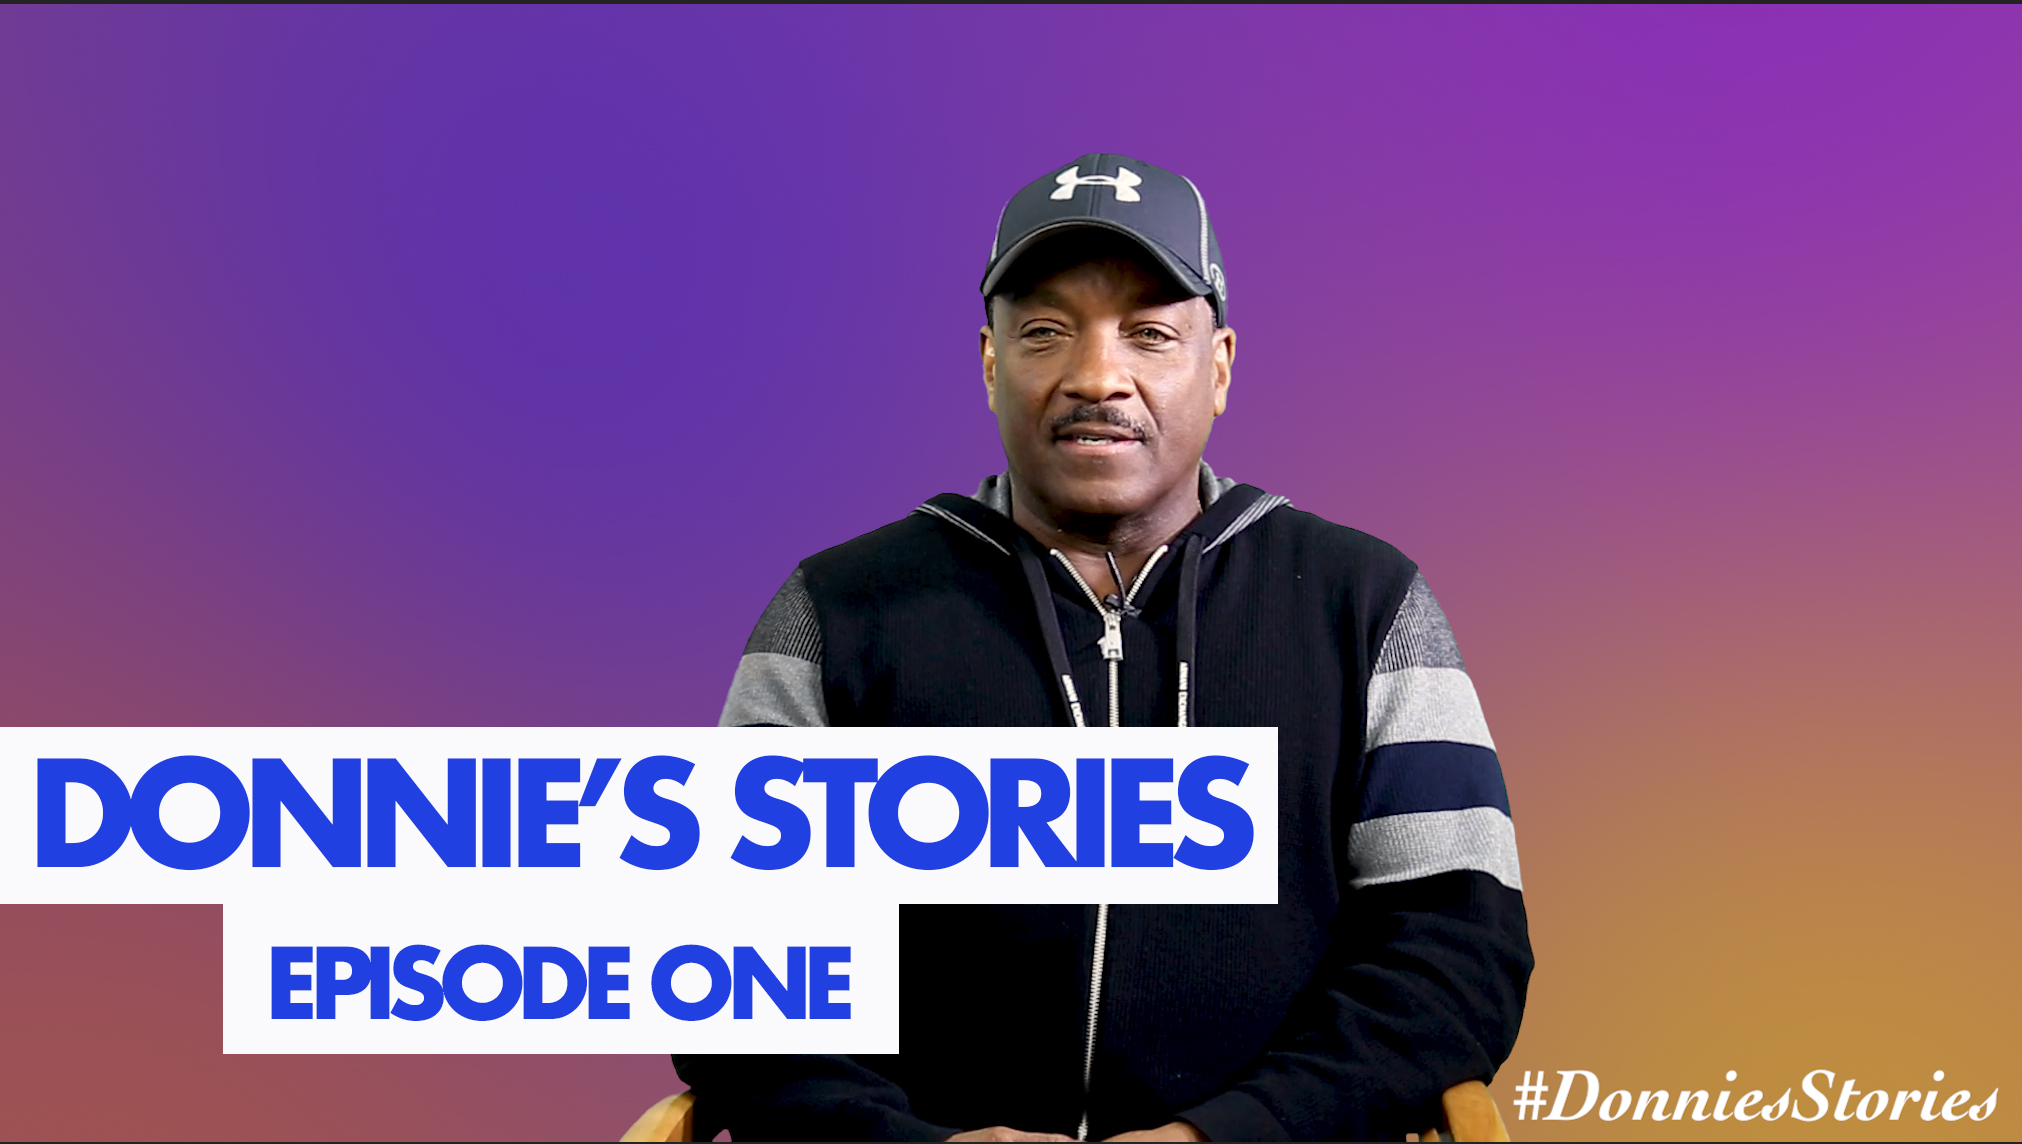 Donnie's Stories